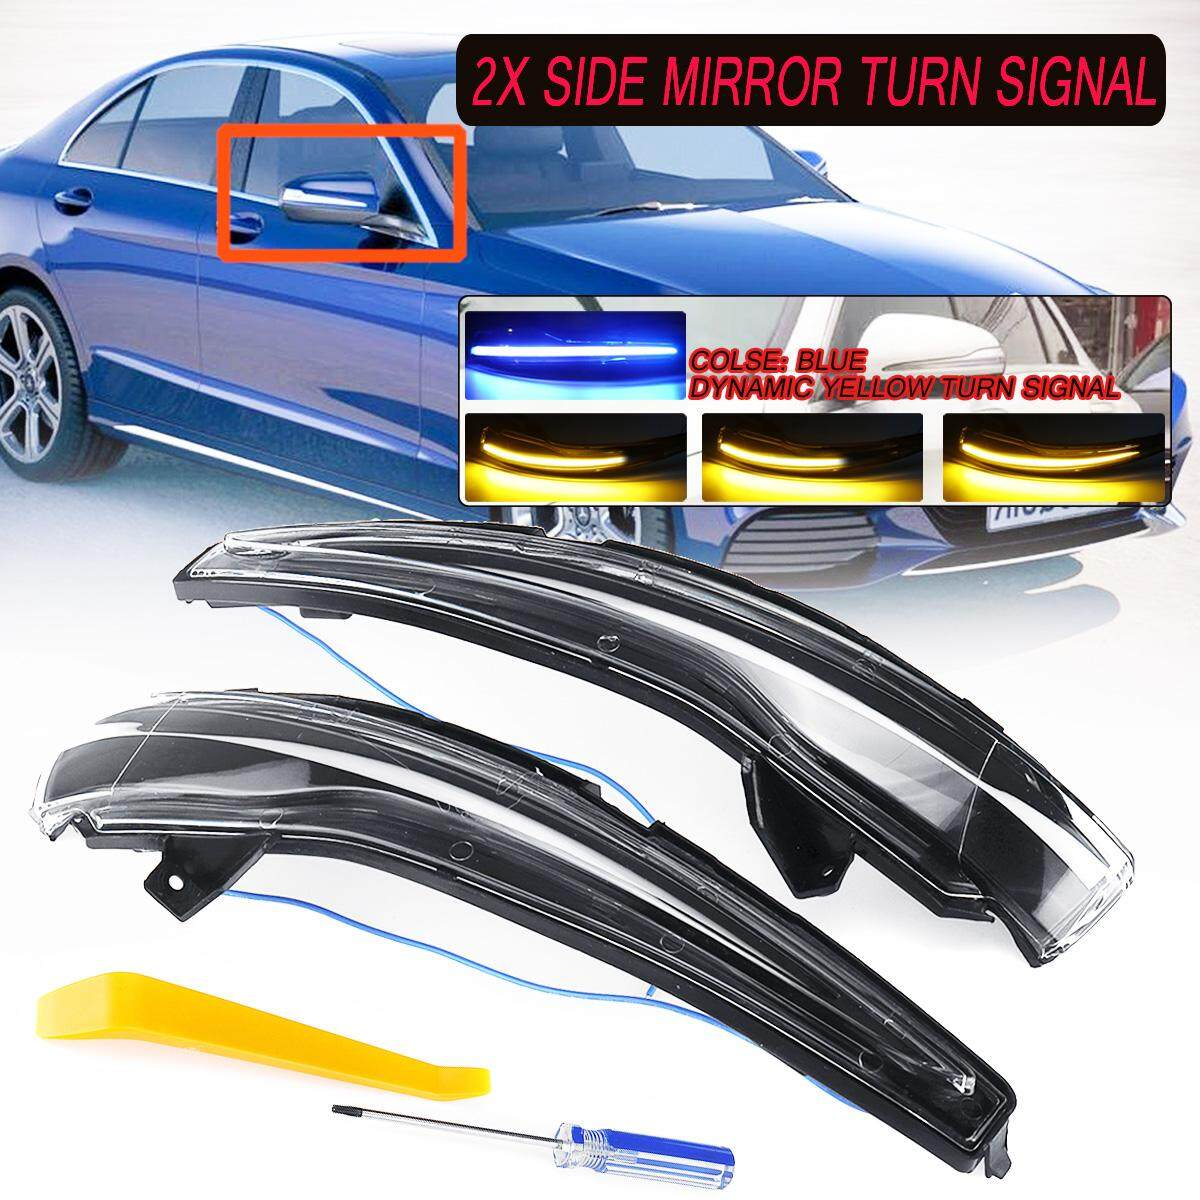 Side Mirror Sequential Blink Turn Signal Light For BENZ C E S GLC Class W205